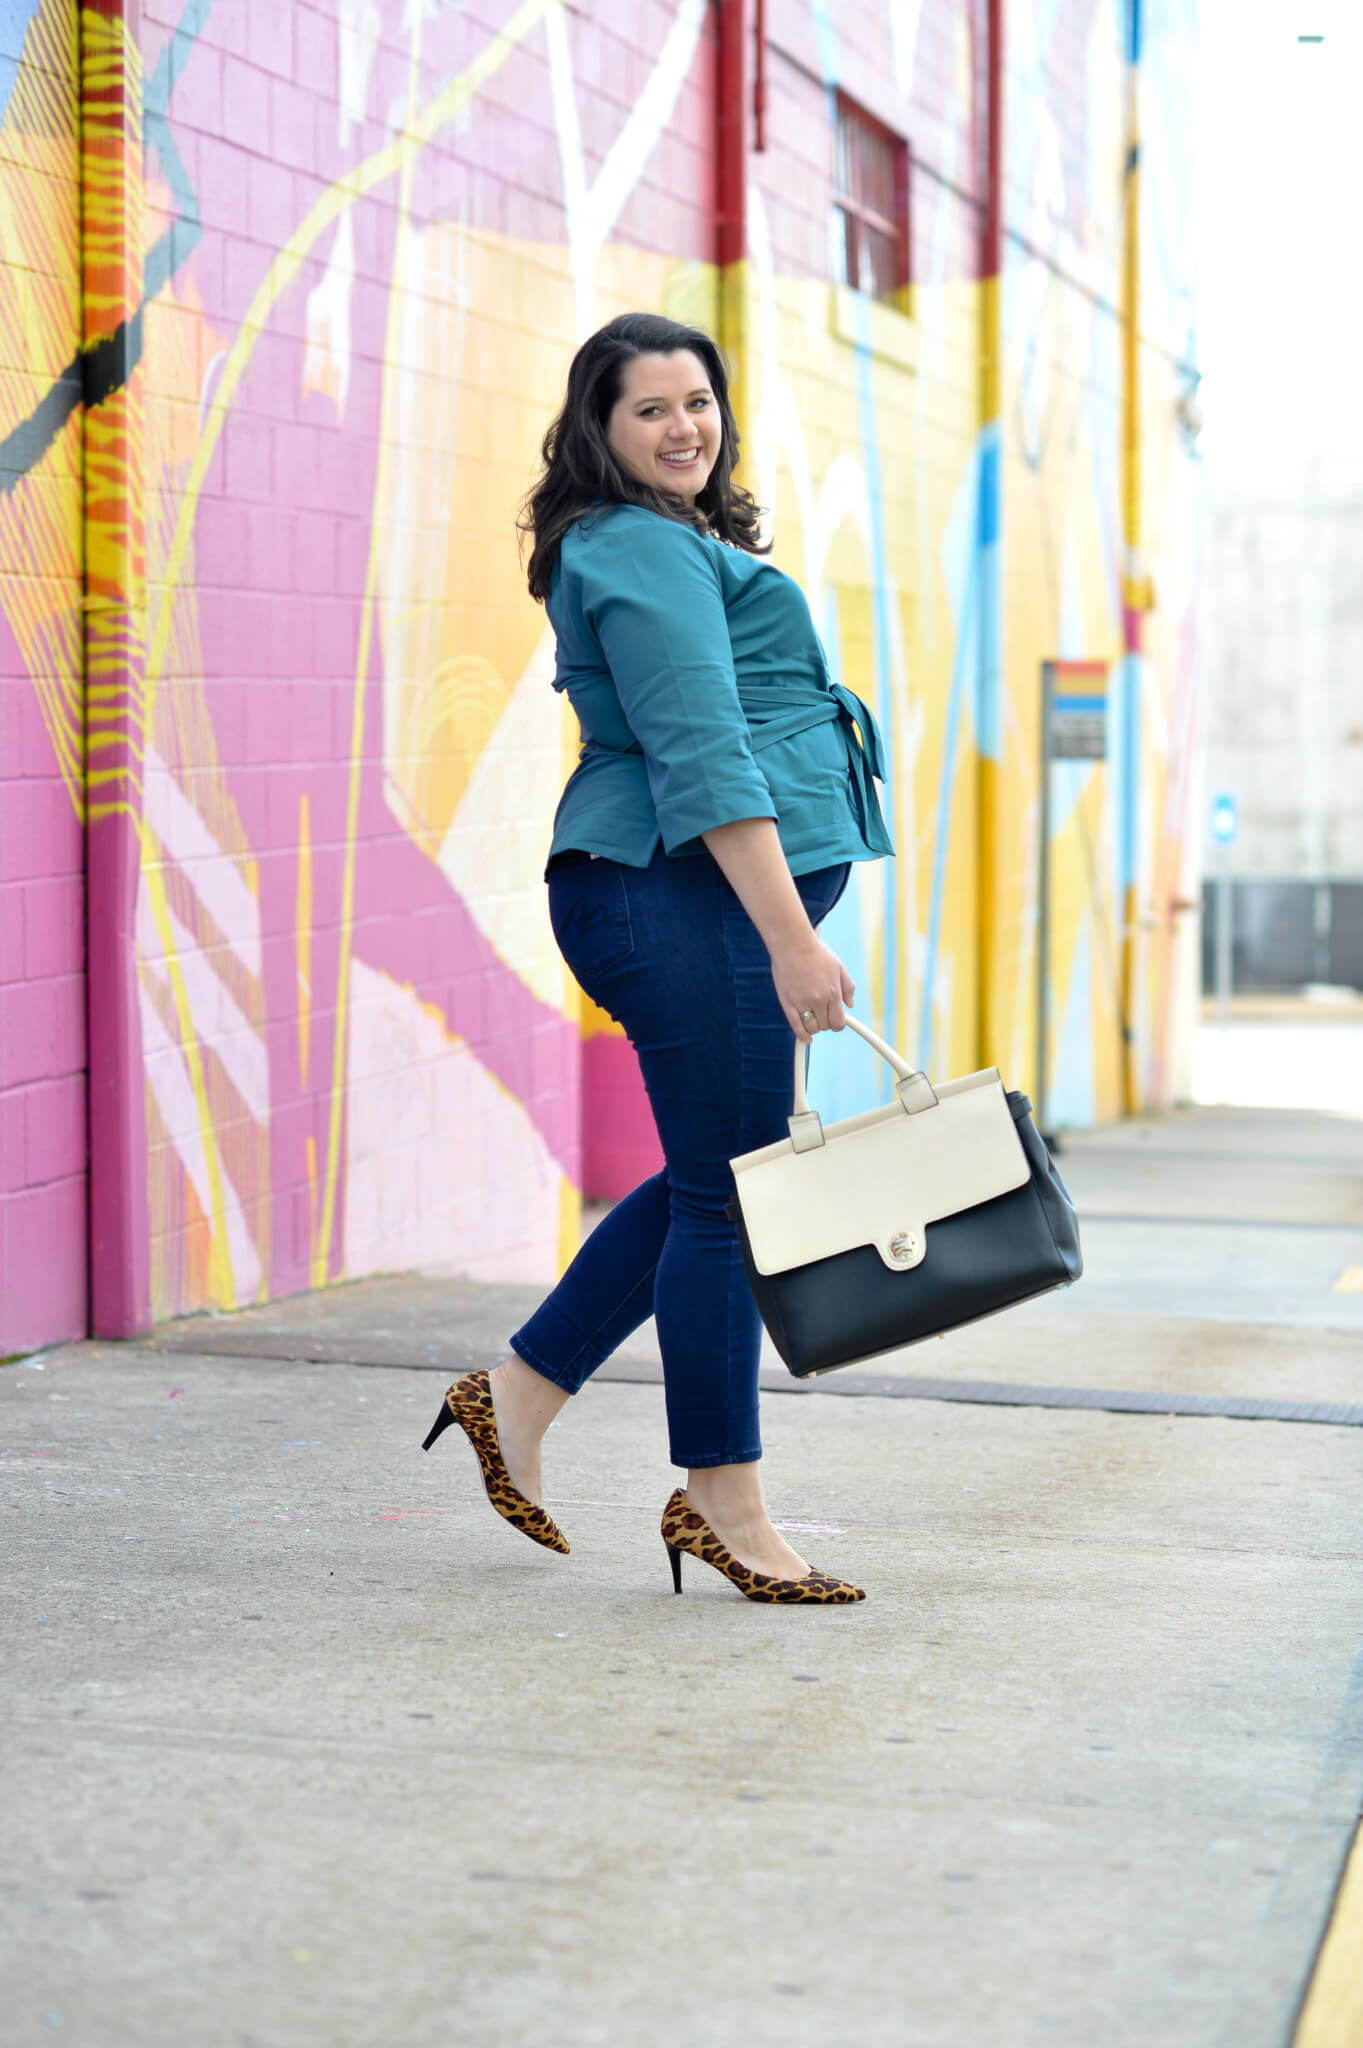 How to wear jeans to work - My company recently went to a flexible dress policy where we can wear jeans to the office. I am challenging myself to style different work outfits that are both appropriate for business casual office and ready for happy hour.